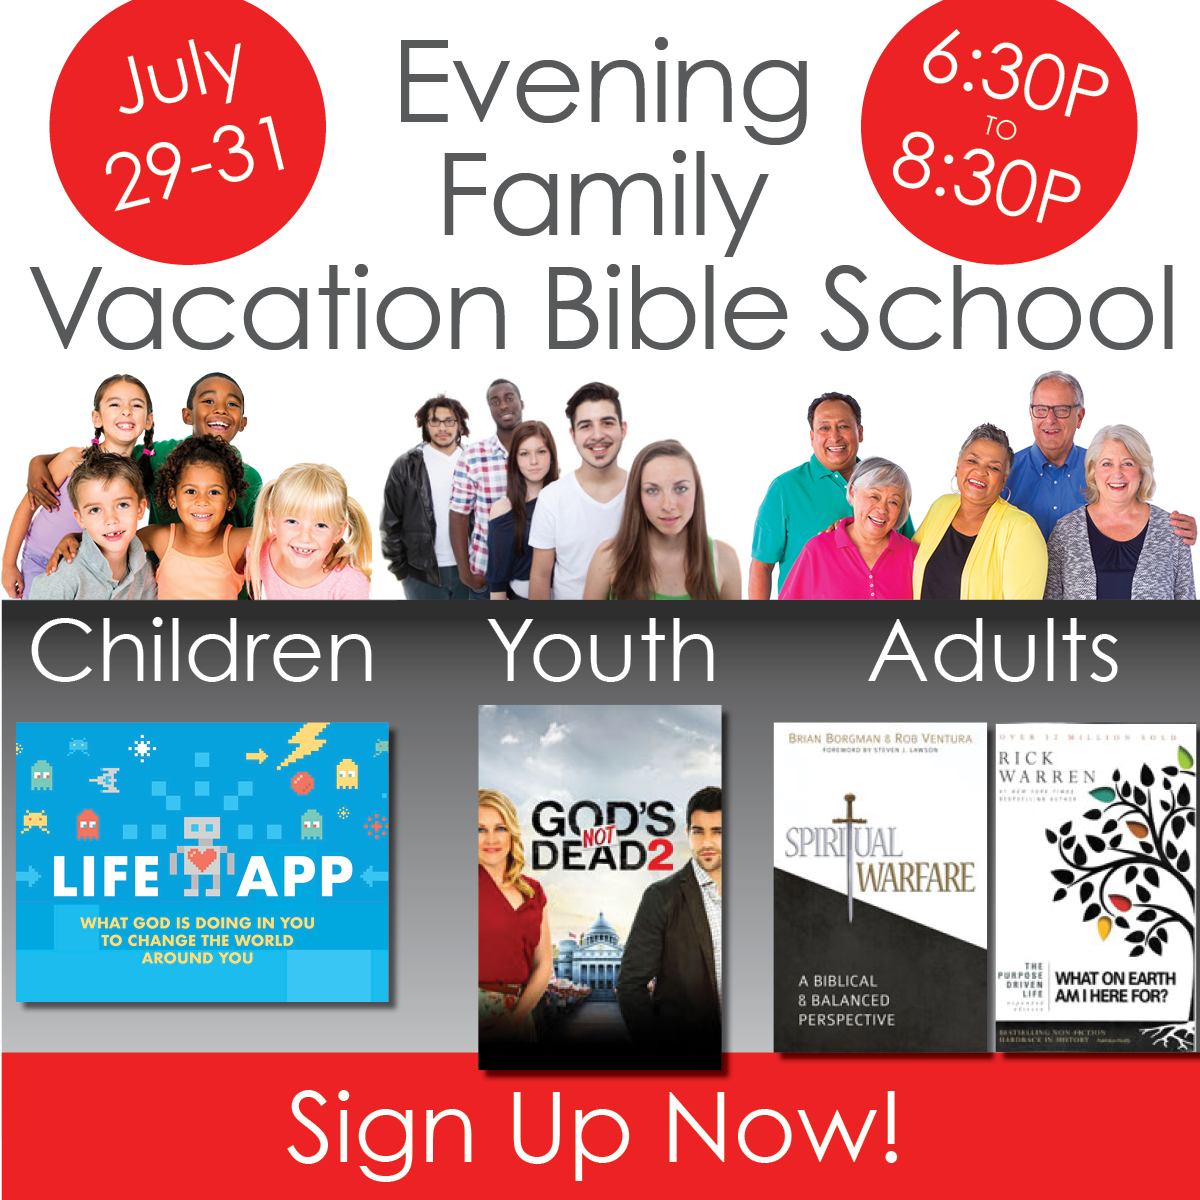 Evening Family VBS - Sign Up Now!